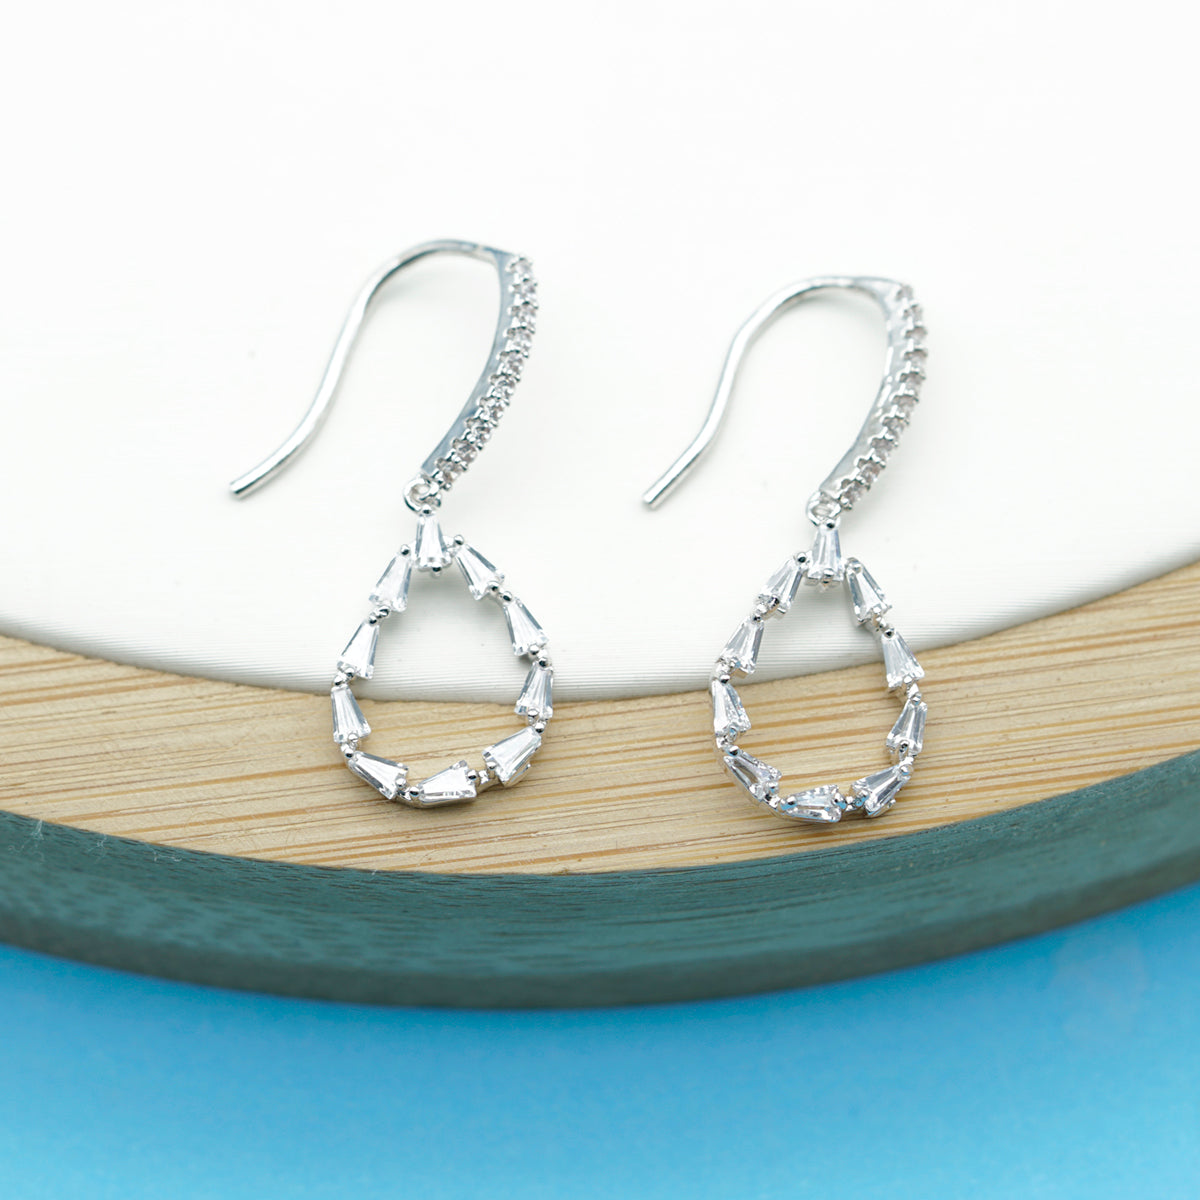 Swarovski Crystal Dazzling Drop Earrings - Kiyara